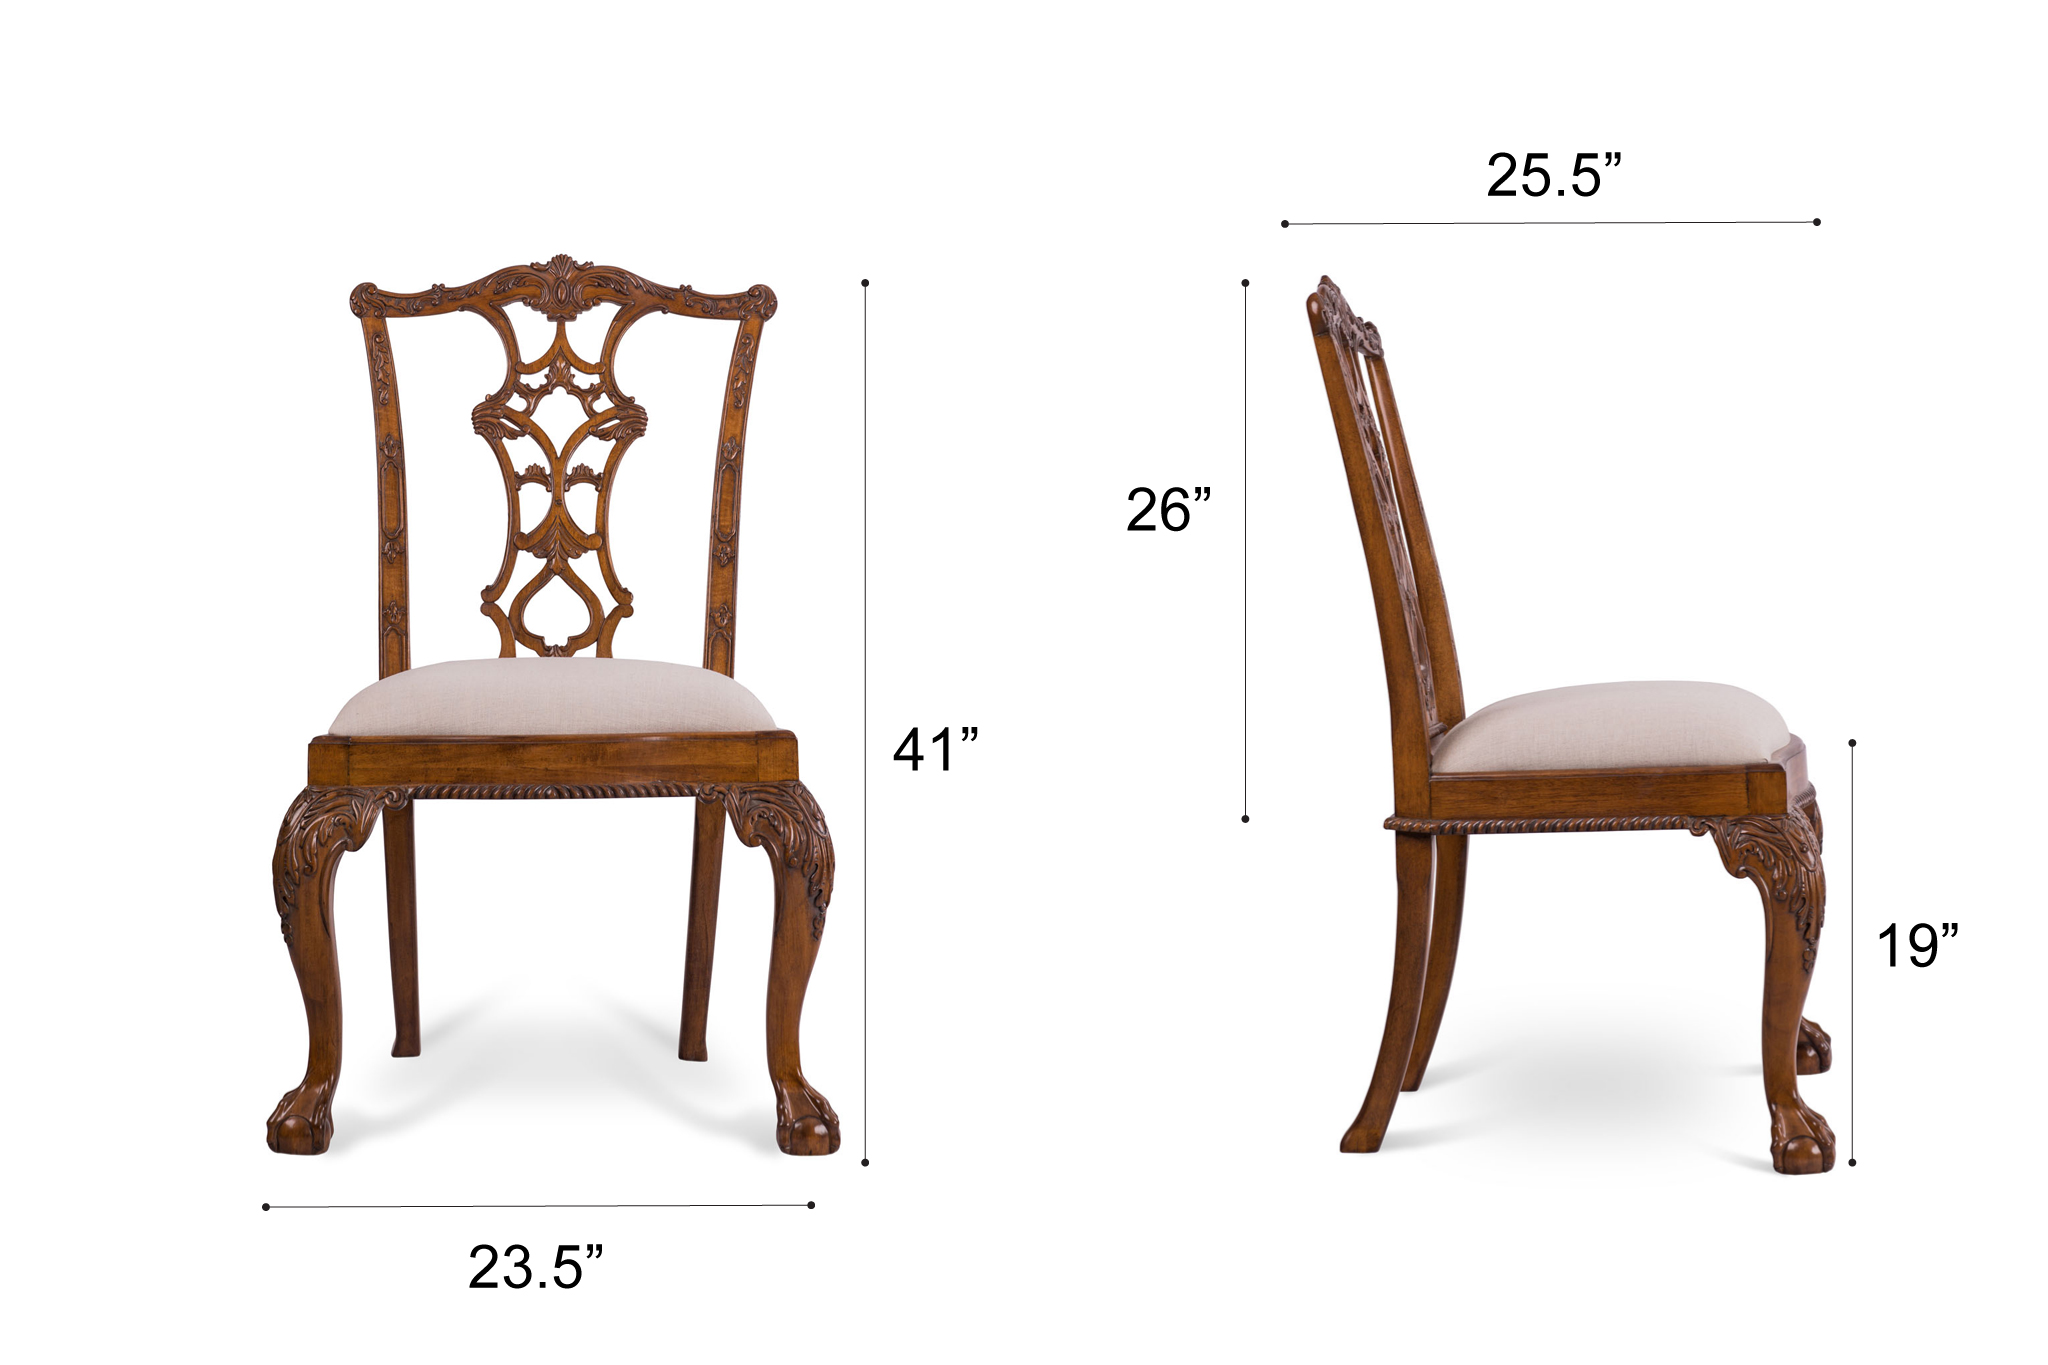 Dowel Furniture Julia Chair Dimensions